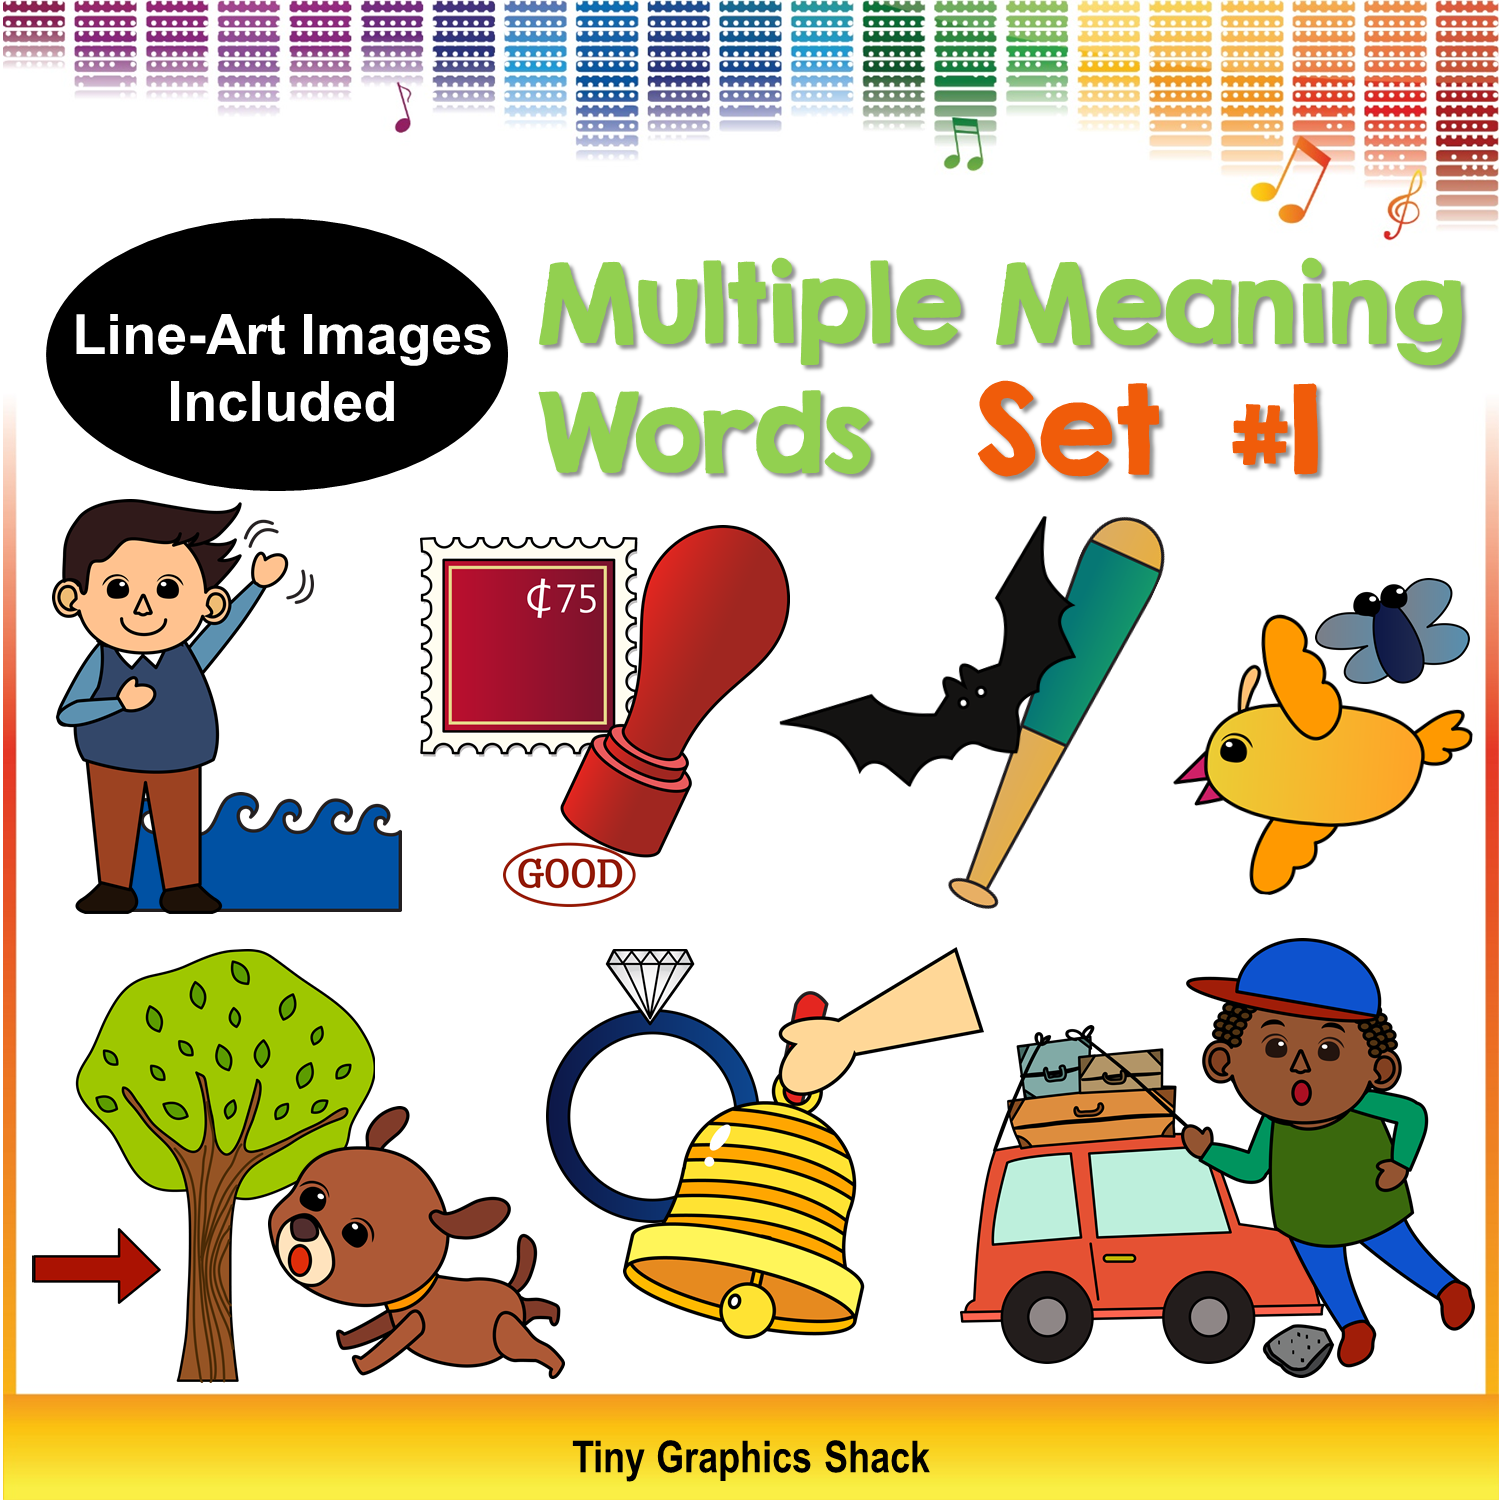 Multiple Meaning Words Clipart Set #1 (Homonyms).